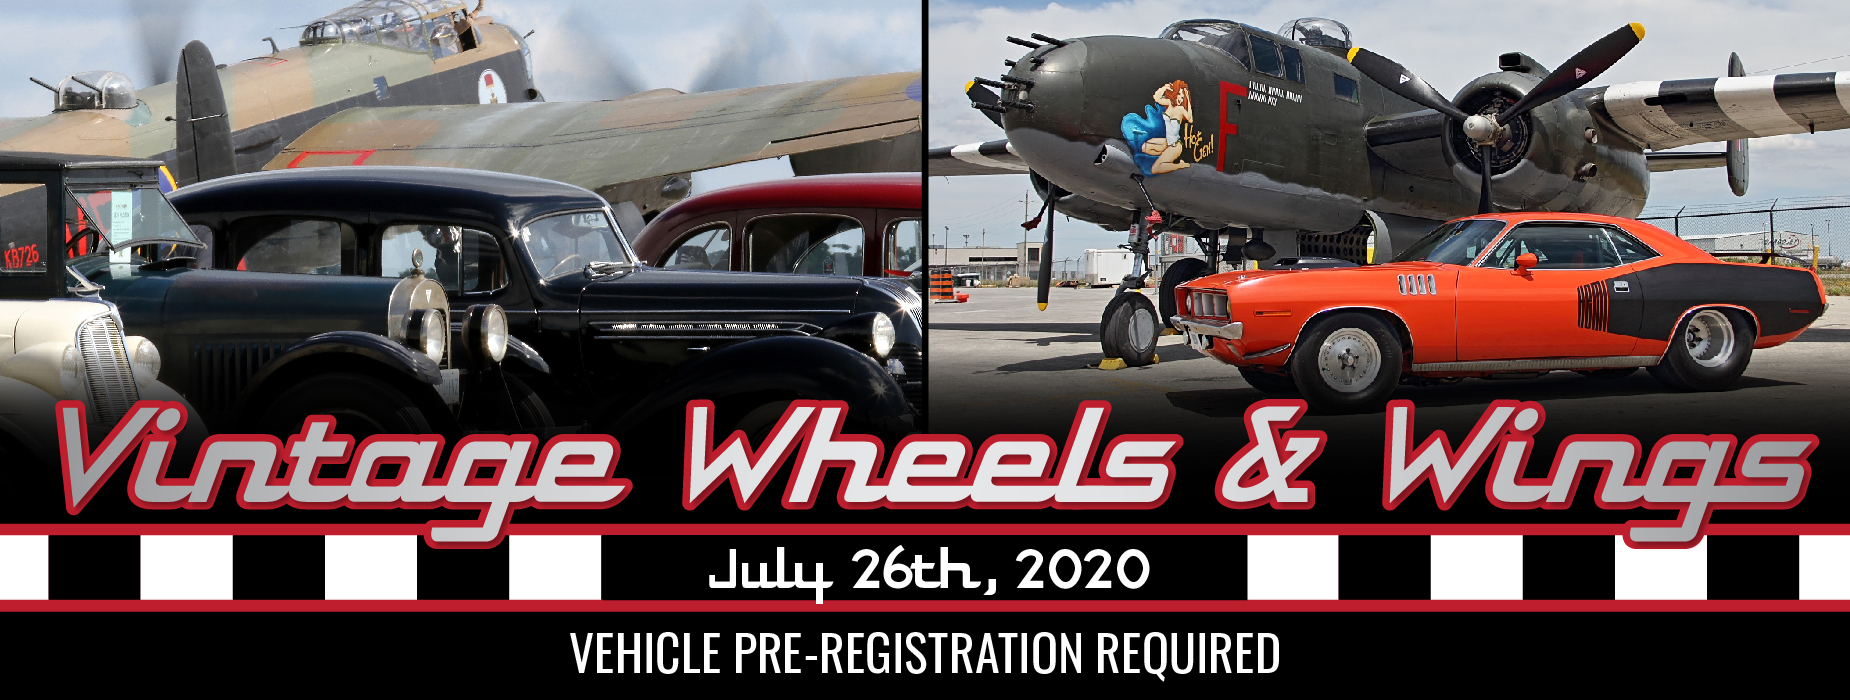 Banner Image for the Vintage Wheels & Wings event